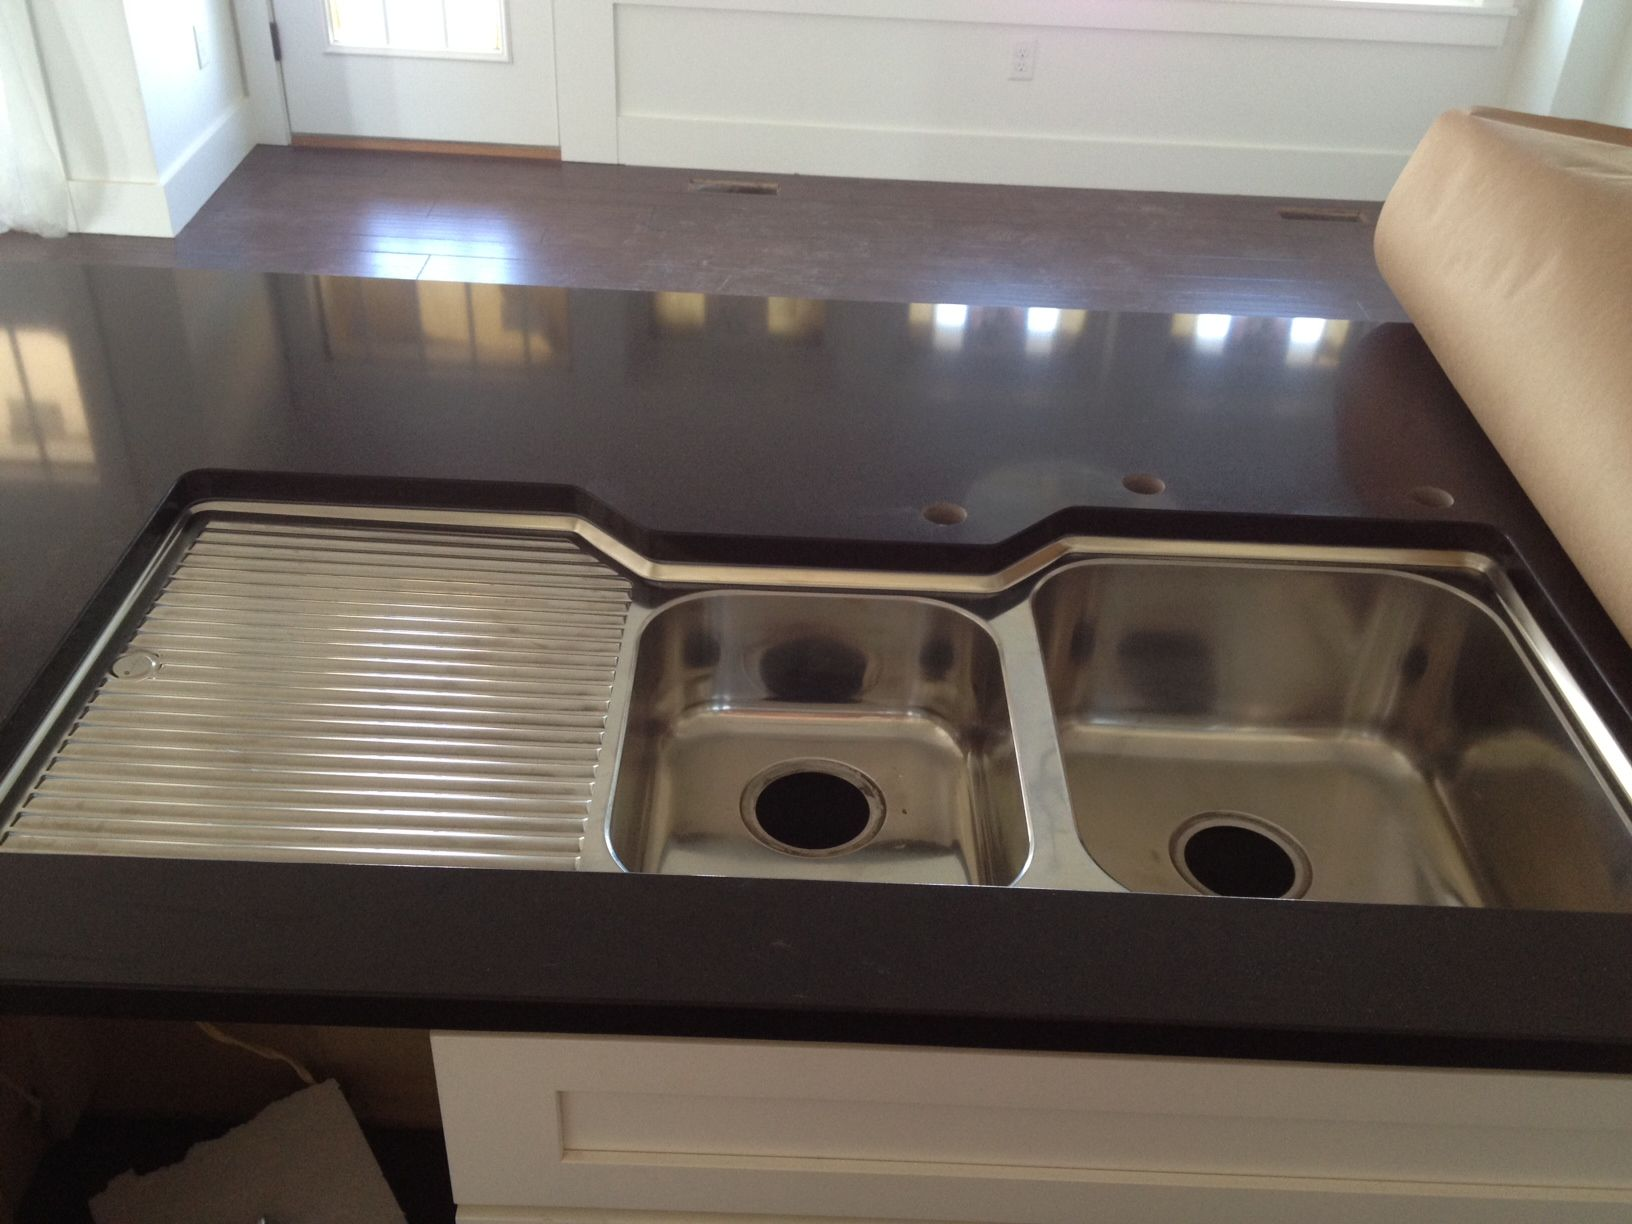 Double Basin Sink Left Drainboard | Oliveri Double Bowl Sink With  Integrated Drainboard